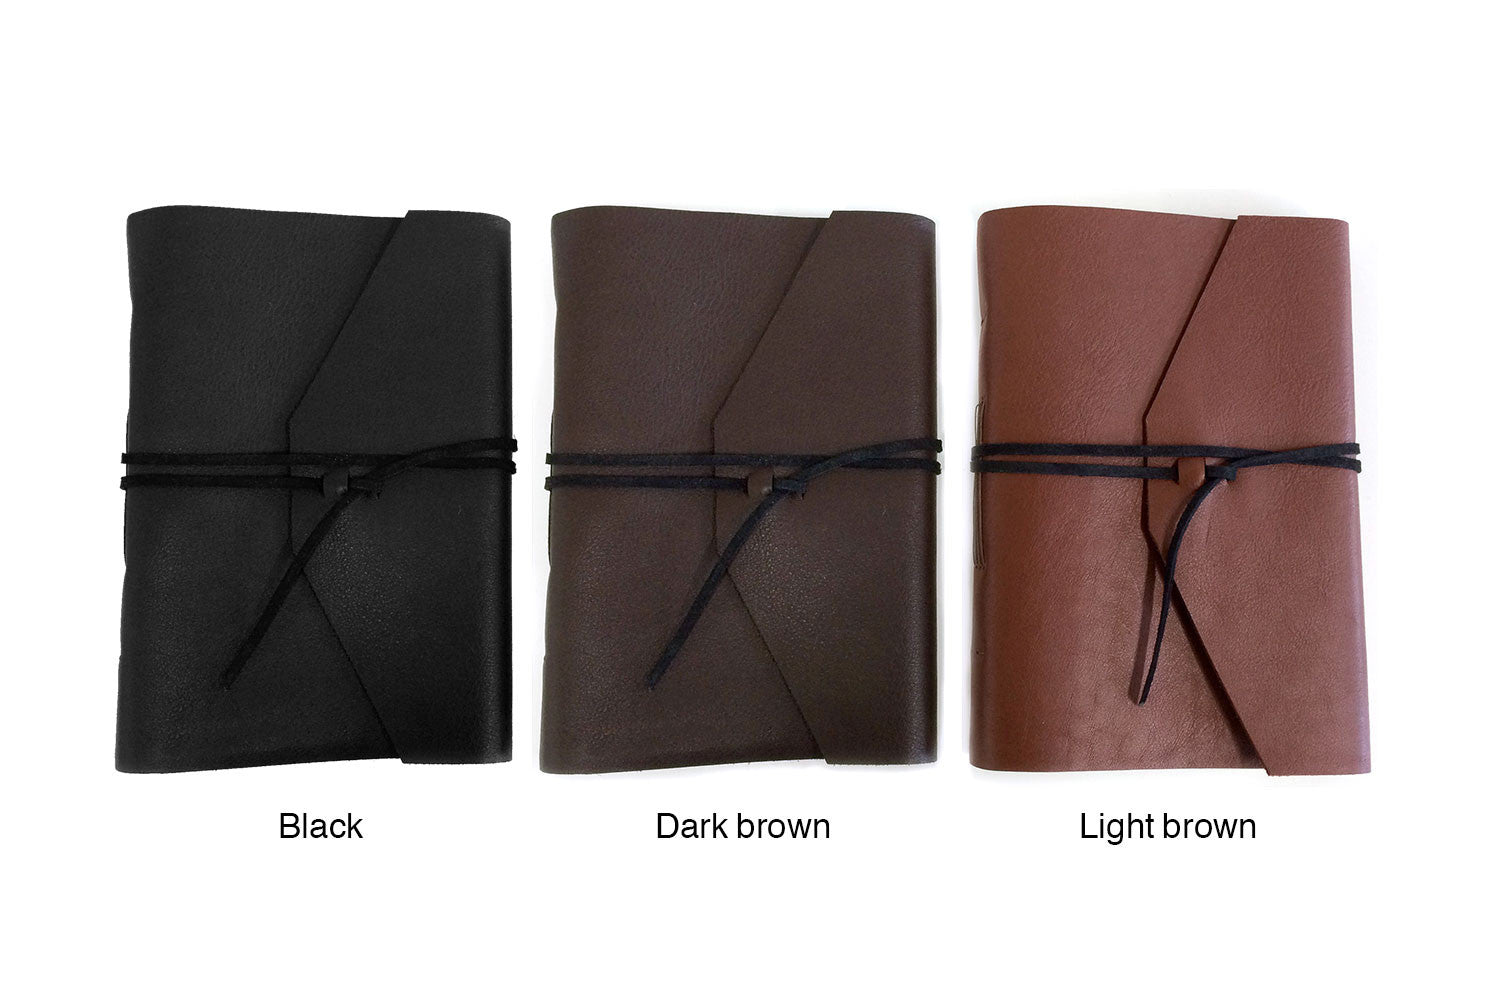 Leather journal in black leather, dark brown leather, or light brown leather from Bookshell